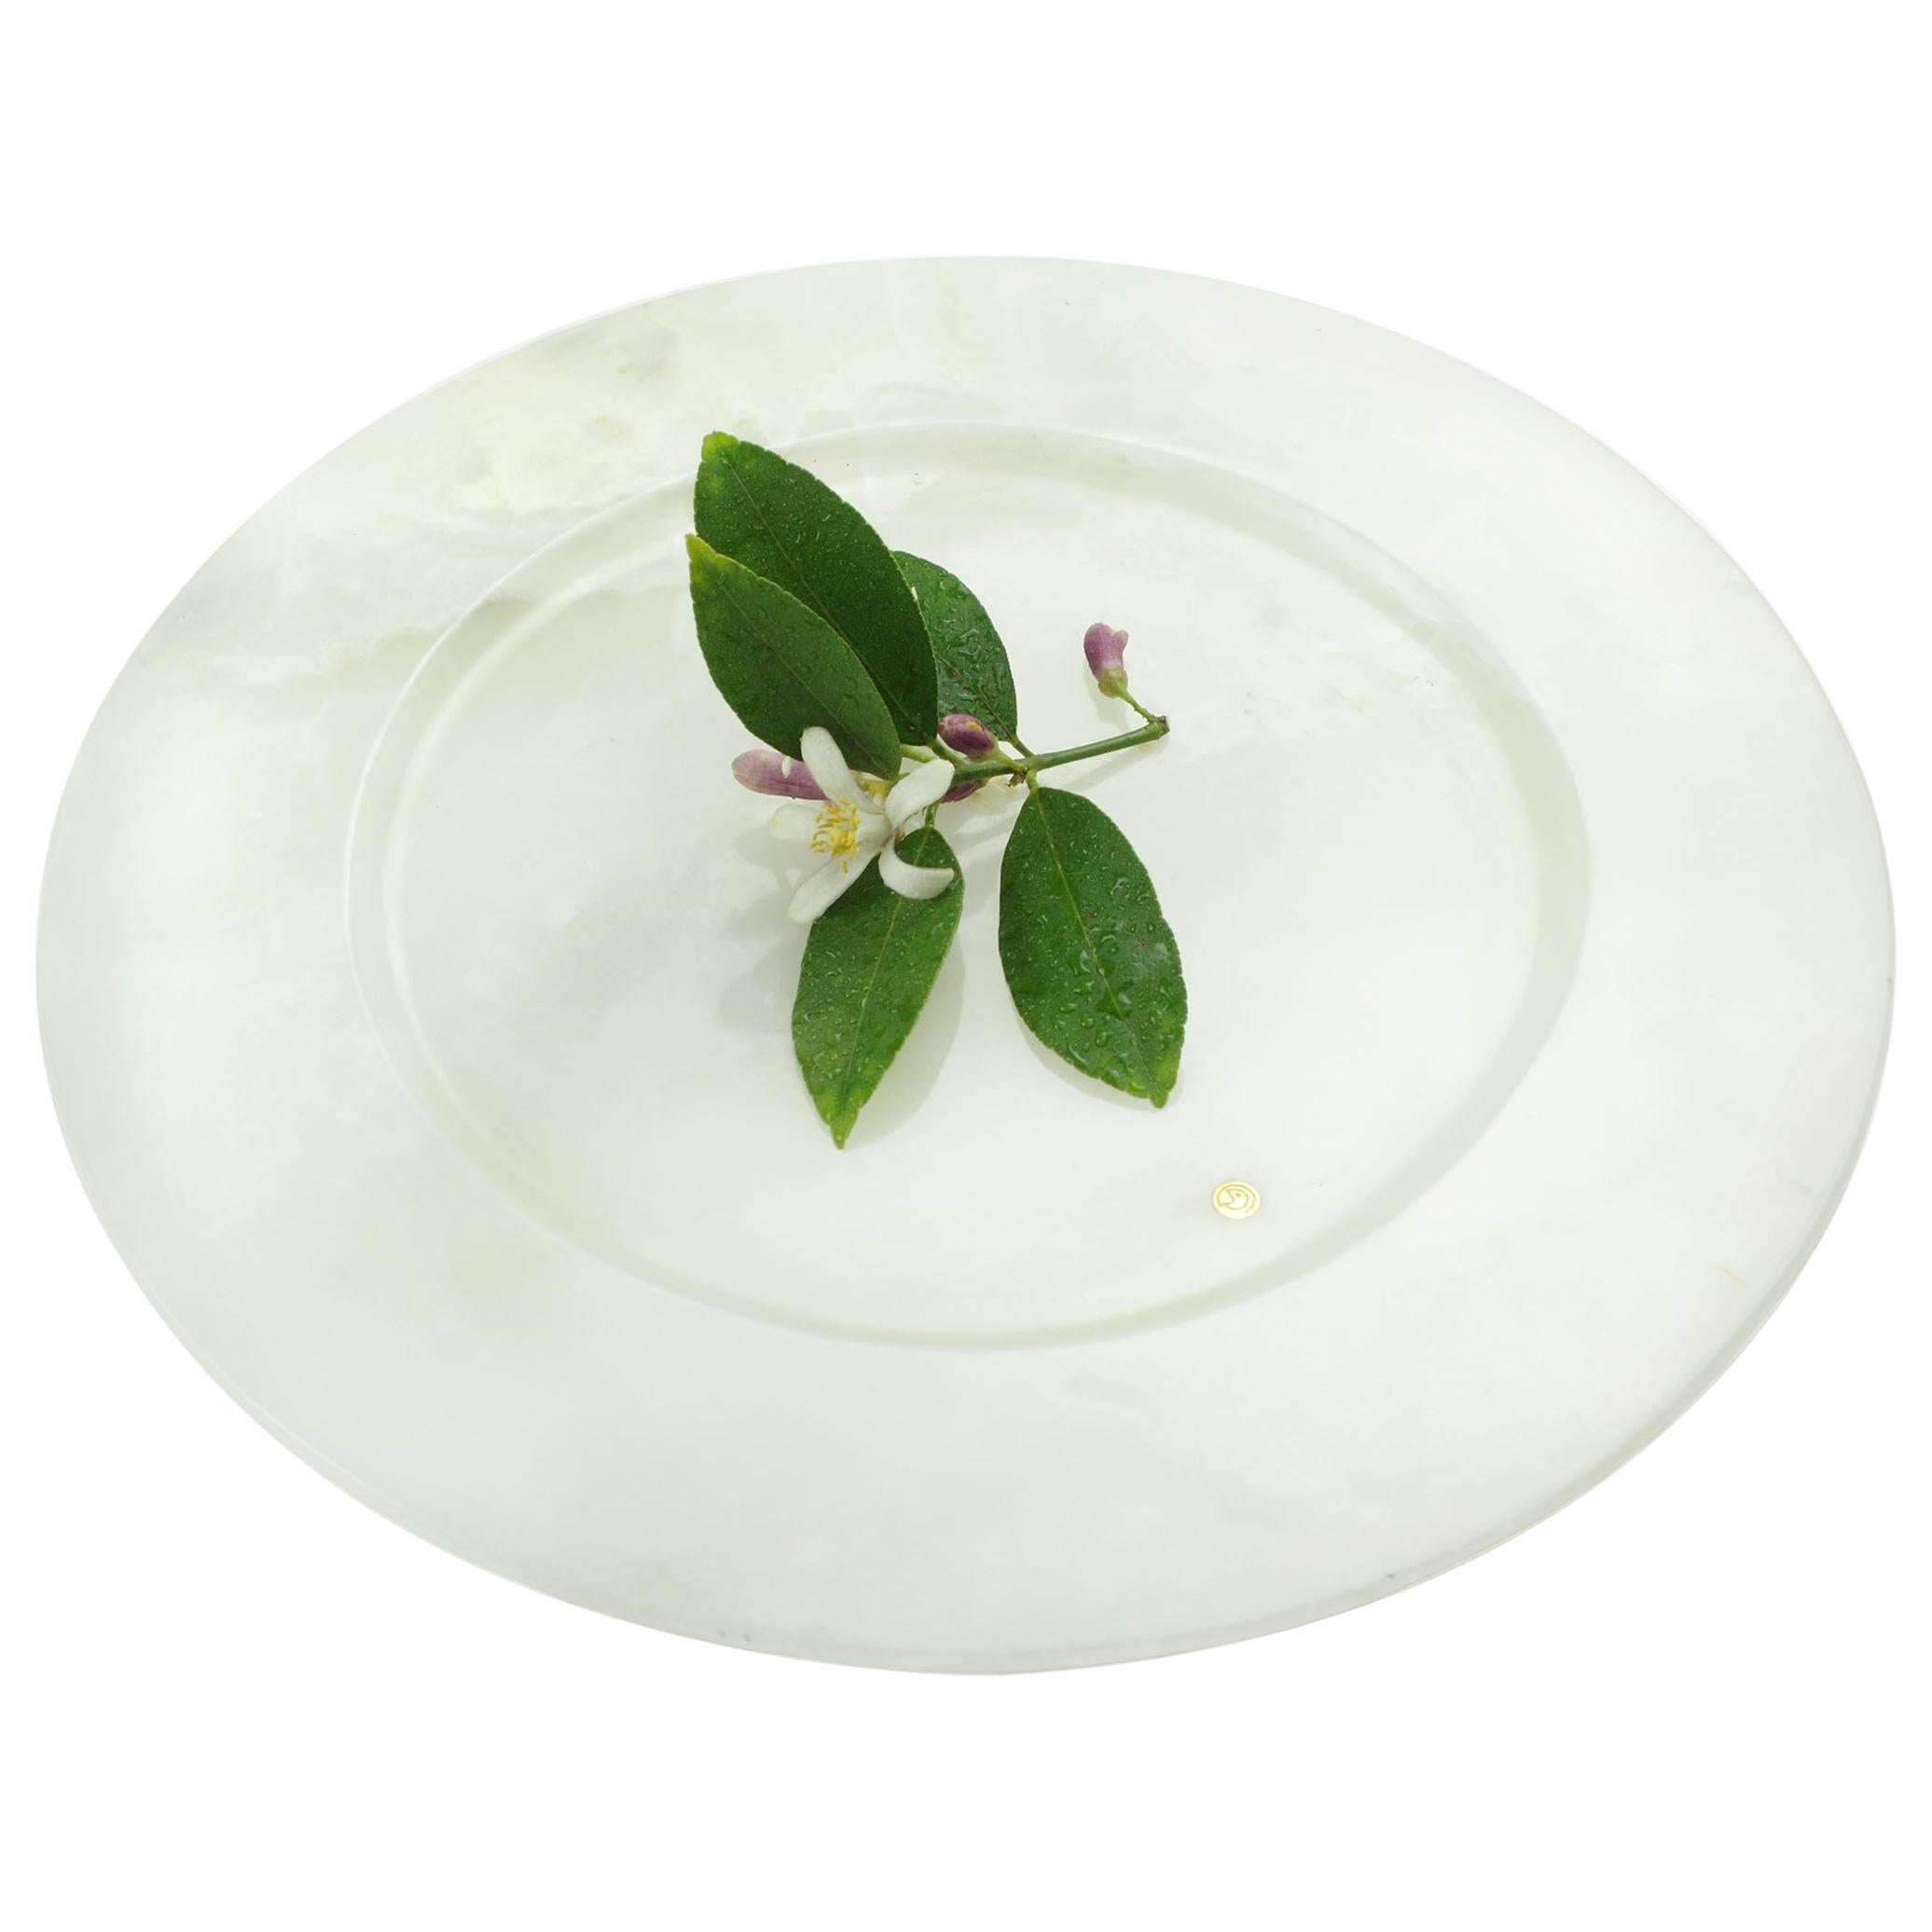 Charger Plate in Solid White Onyx Contemporary Design by Pieruga Marble, Italy